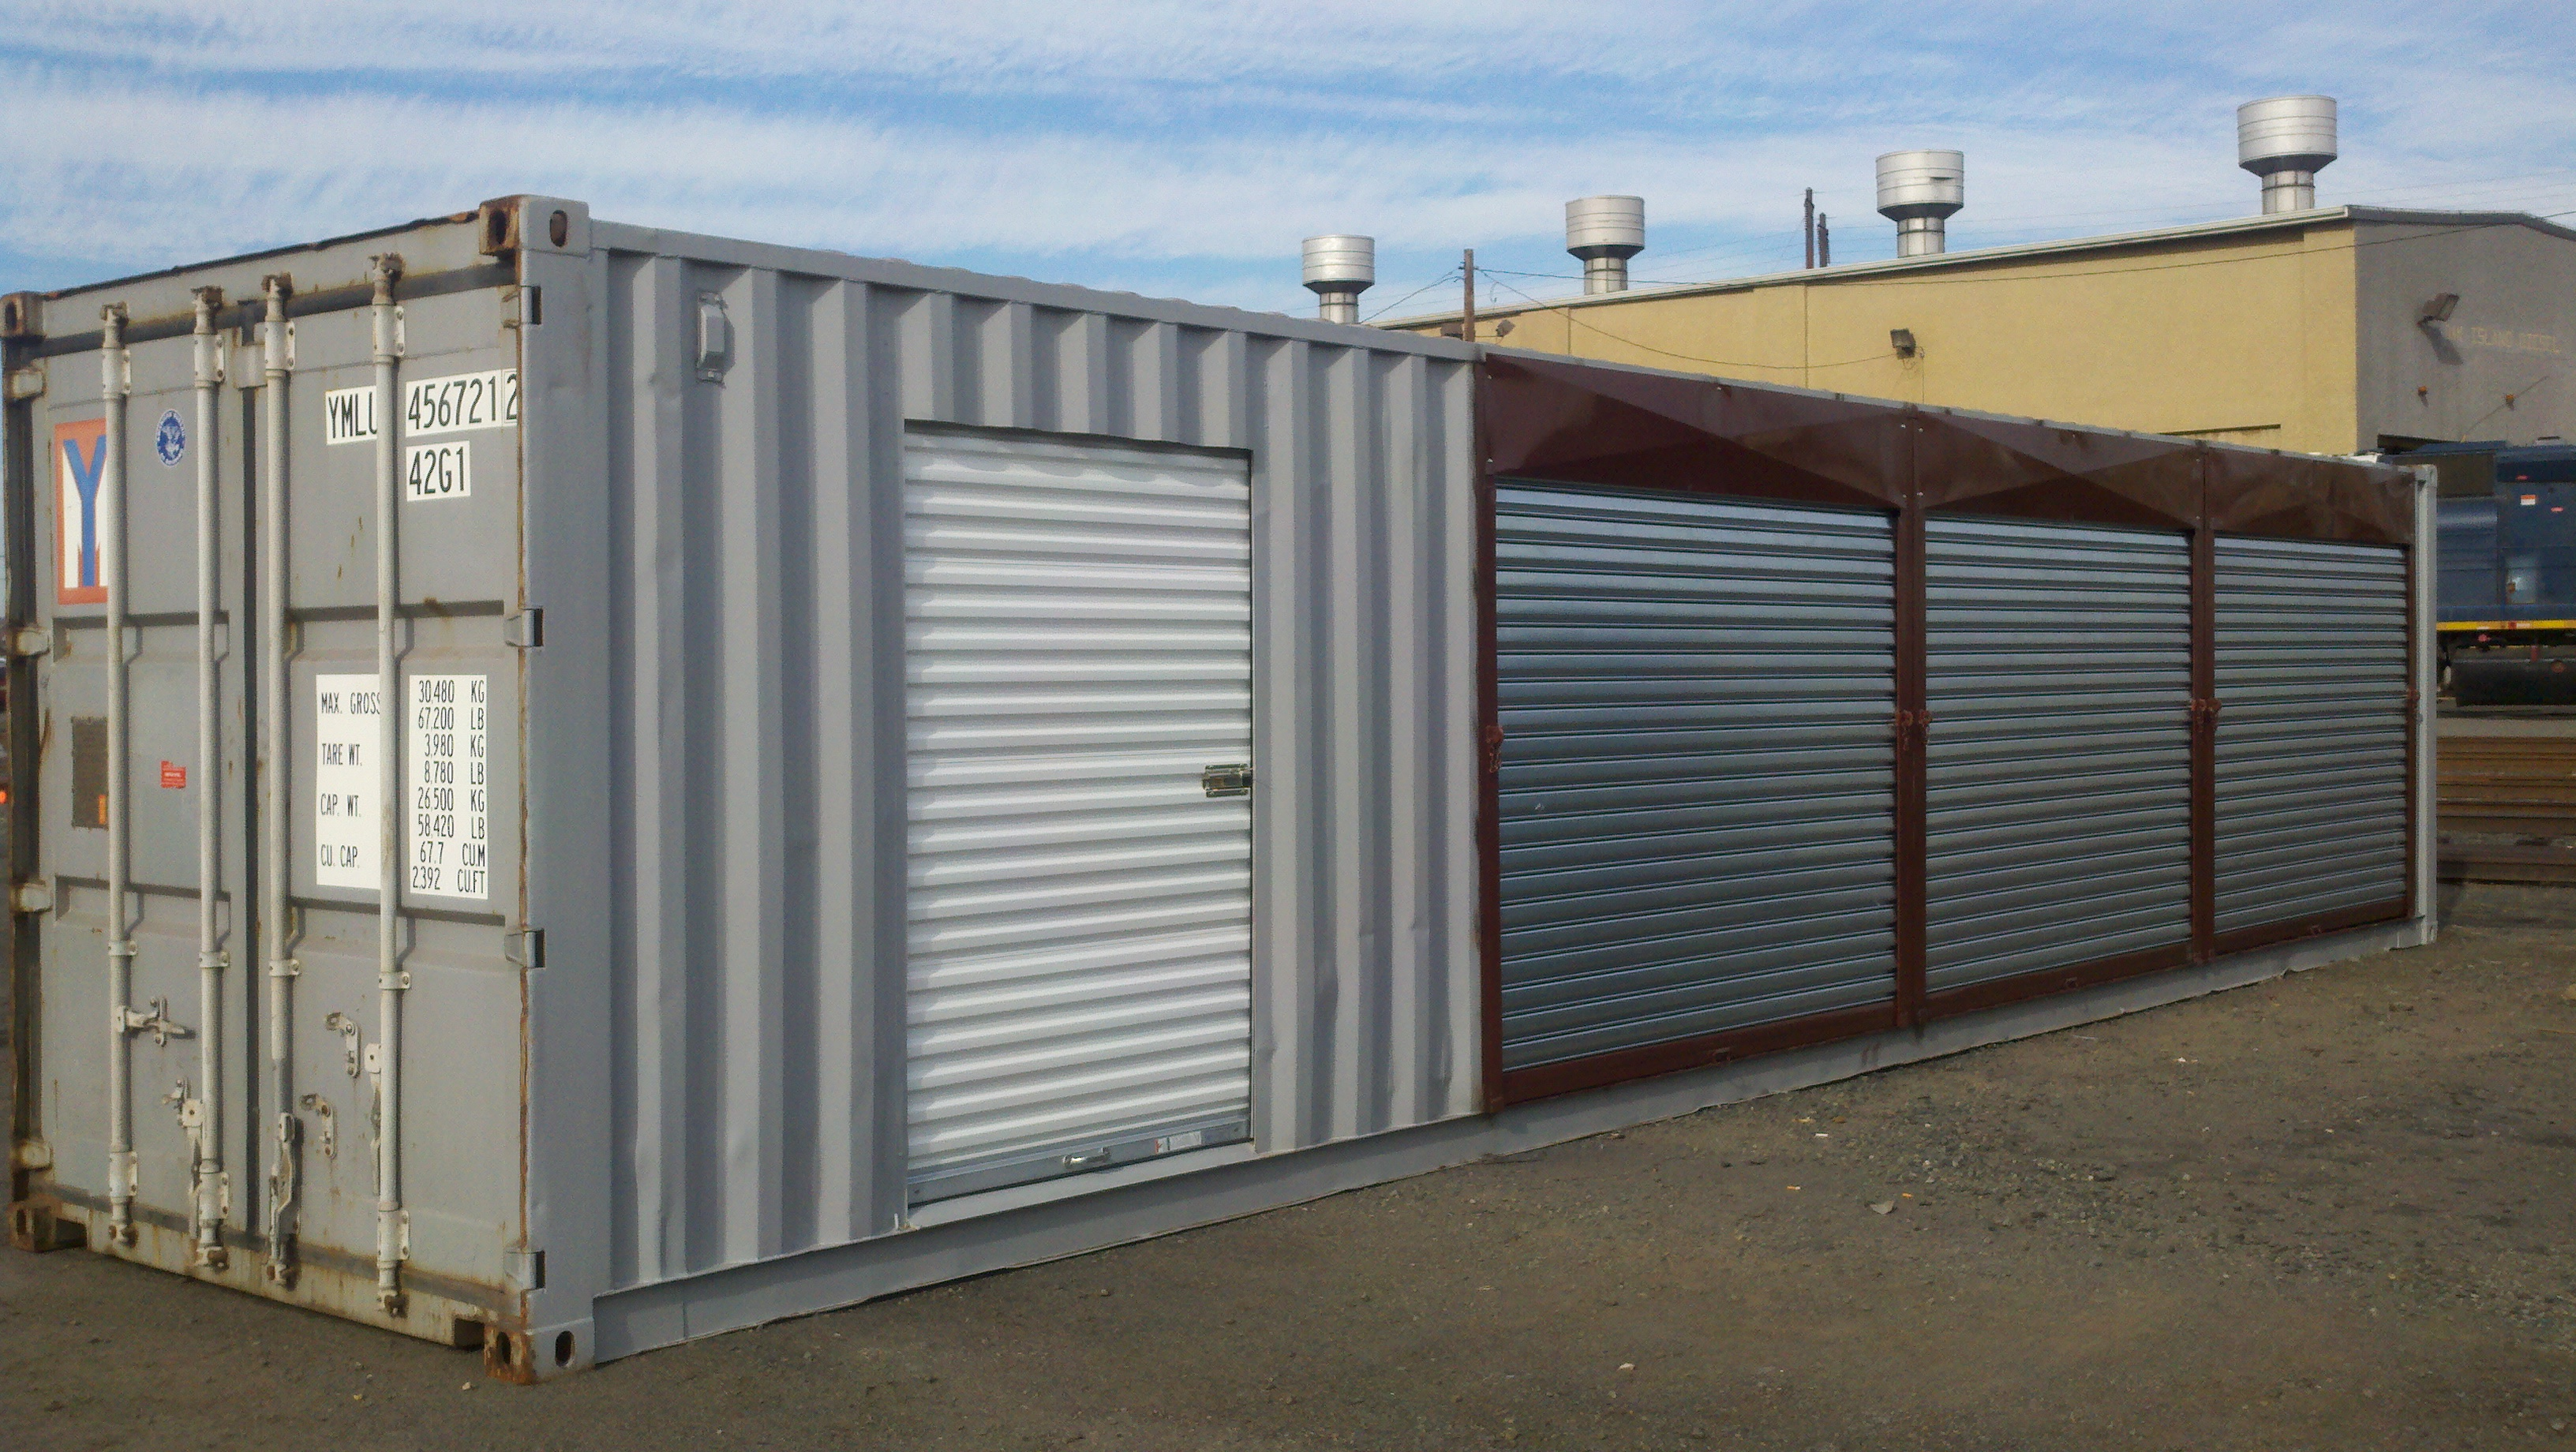 Intercube containers in stonington ct 06355 for Shipping containers for sale in minnesota